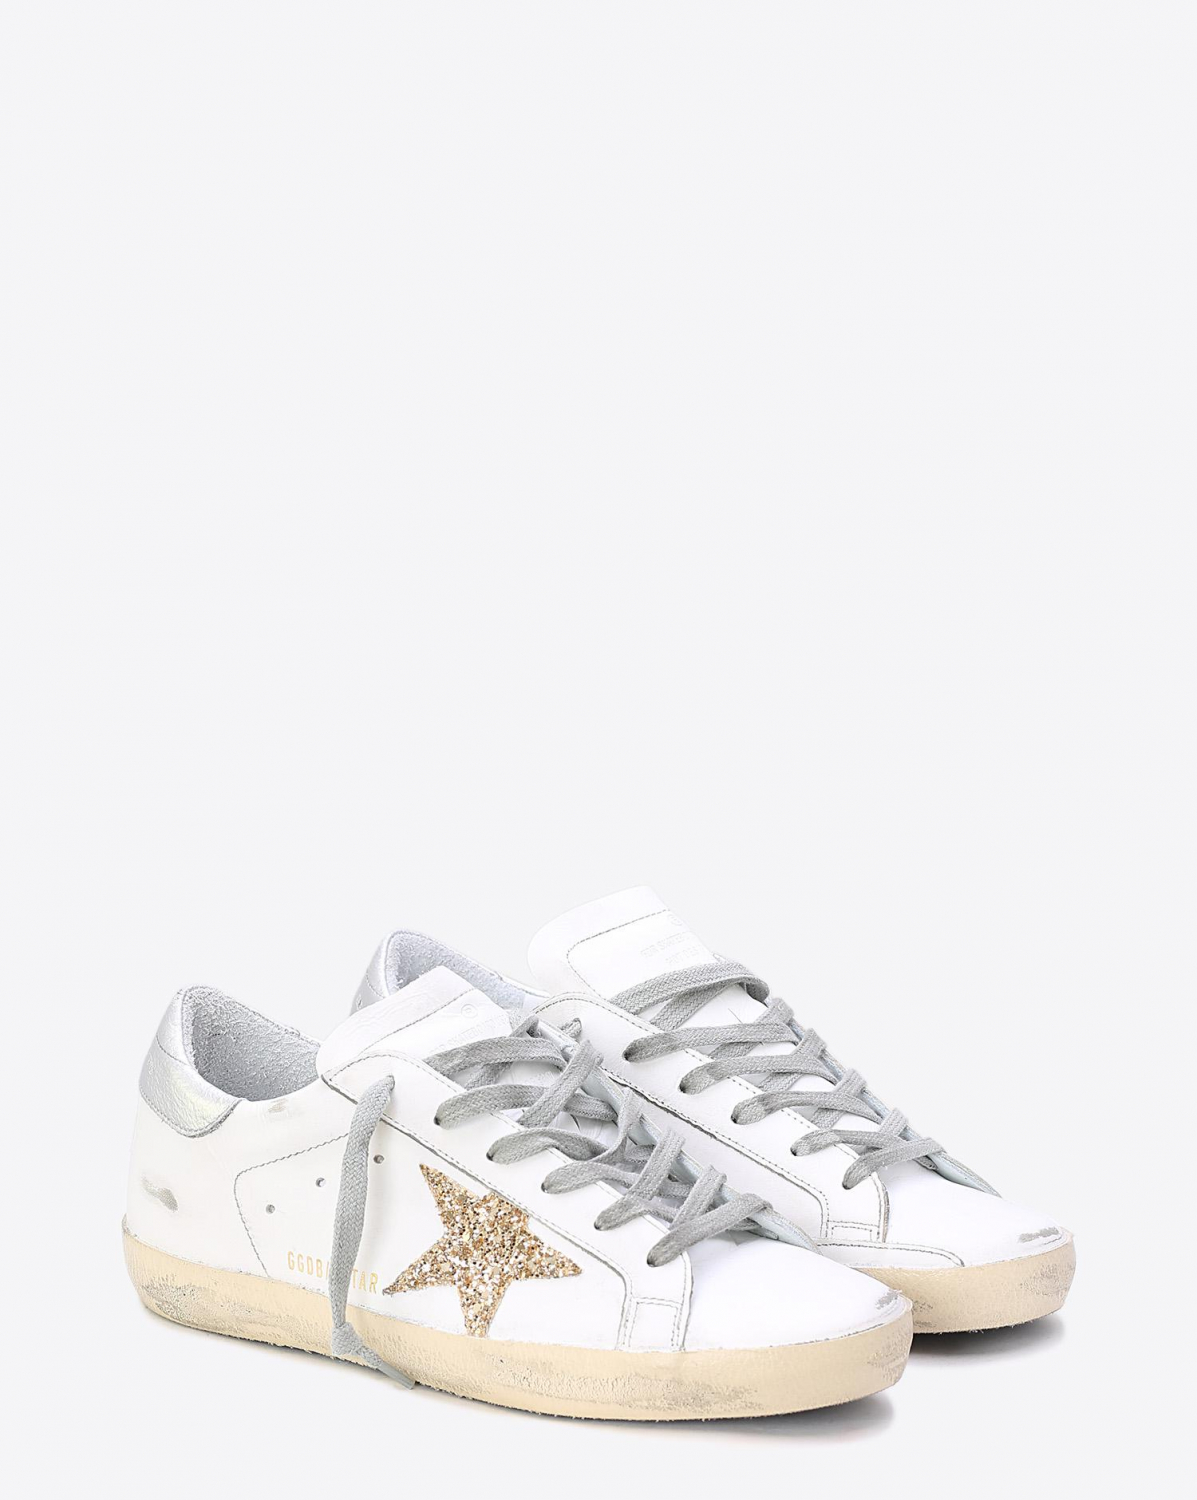 Golden Goose Woman Collection Sneakers Superstar White Leather Gold Glitter